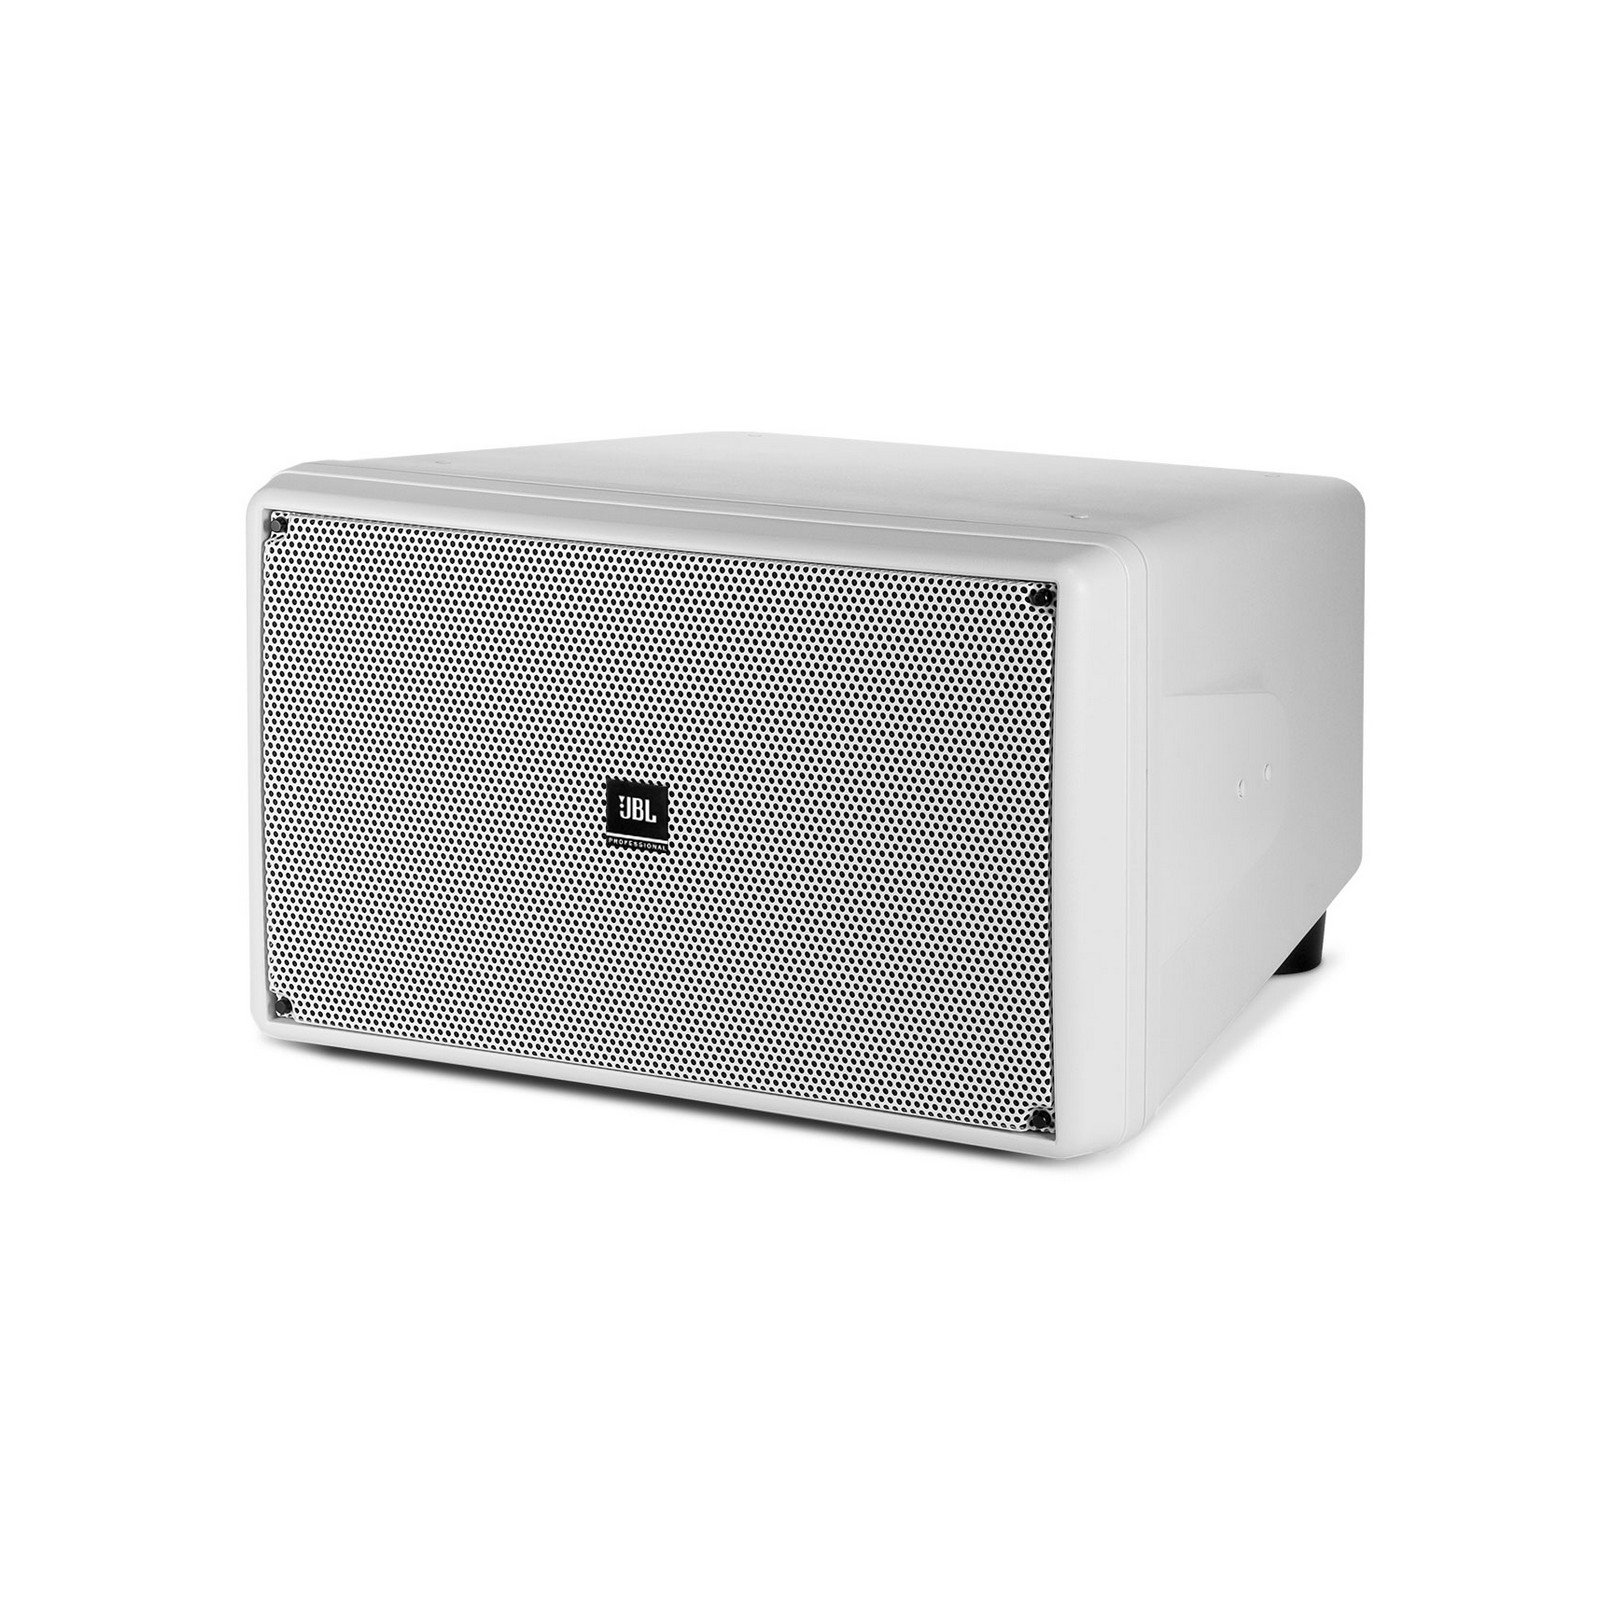 JBL SB2210-WH | Dual 10 inch LF Drivers 500 Watts Outdoor Compact Subwoofer Single Unit White